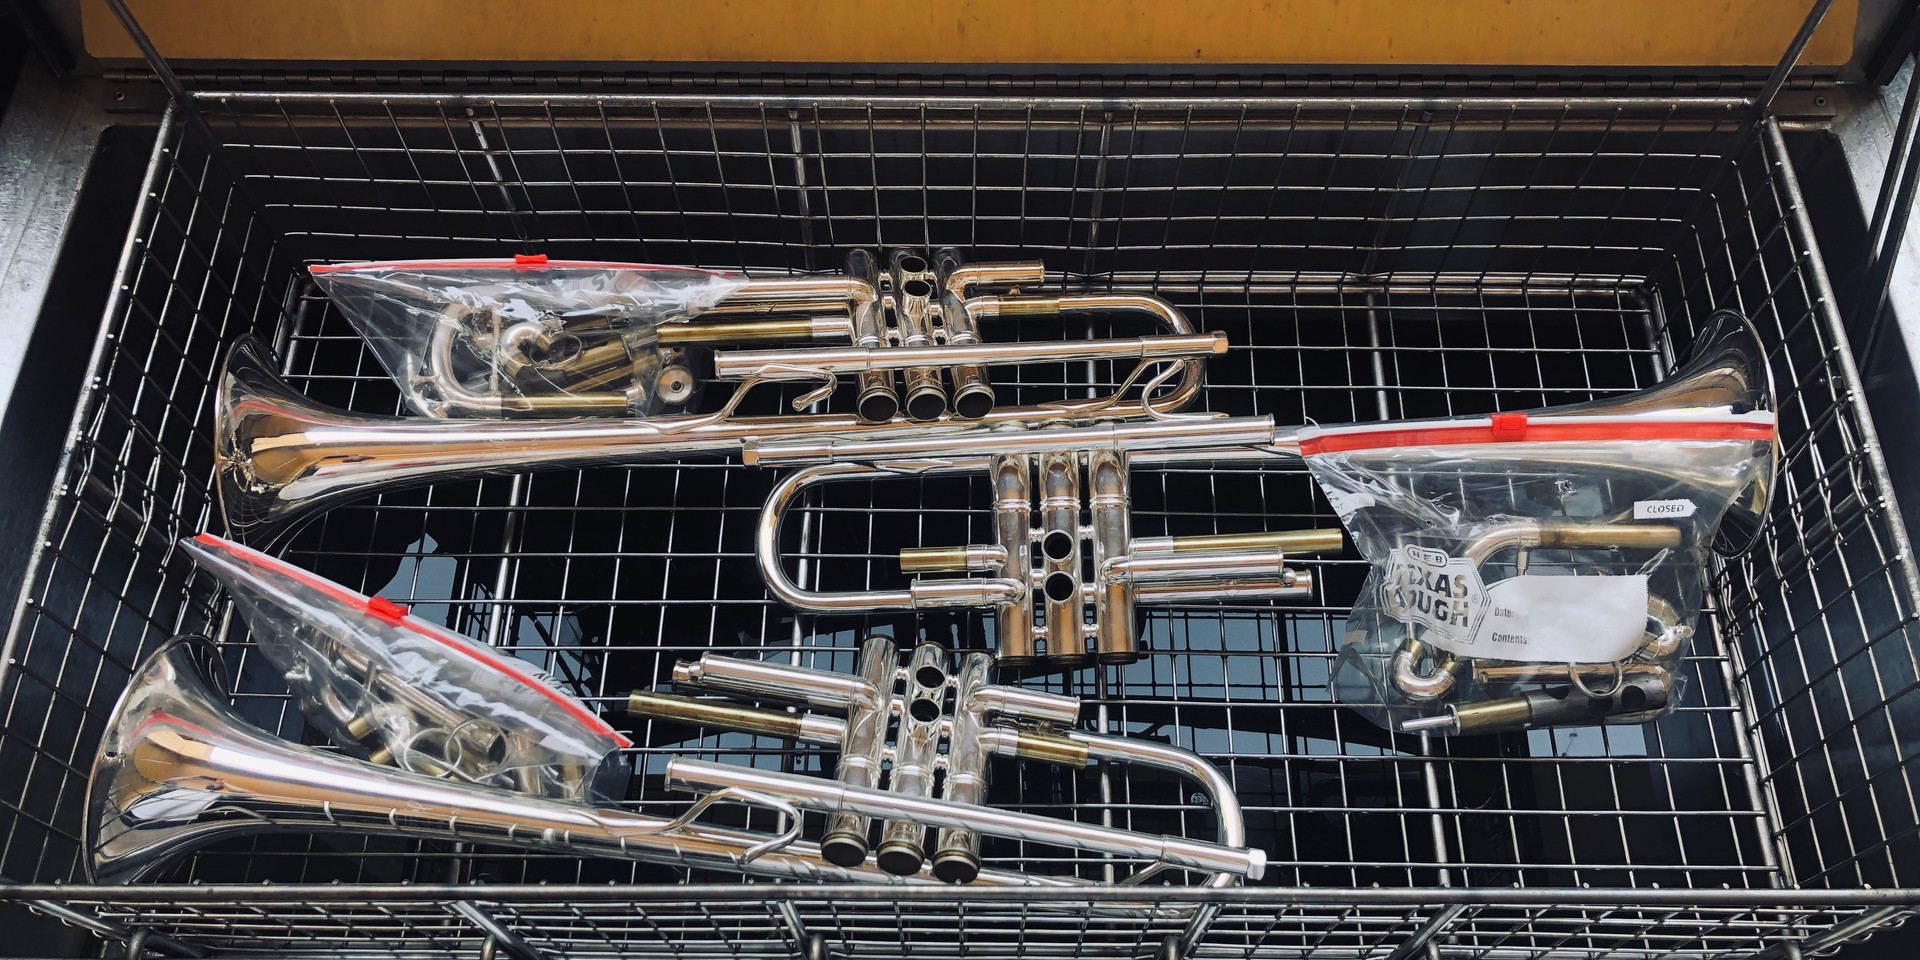 Trumpets in the tank